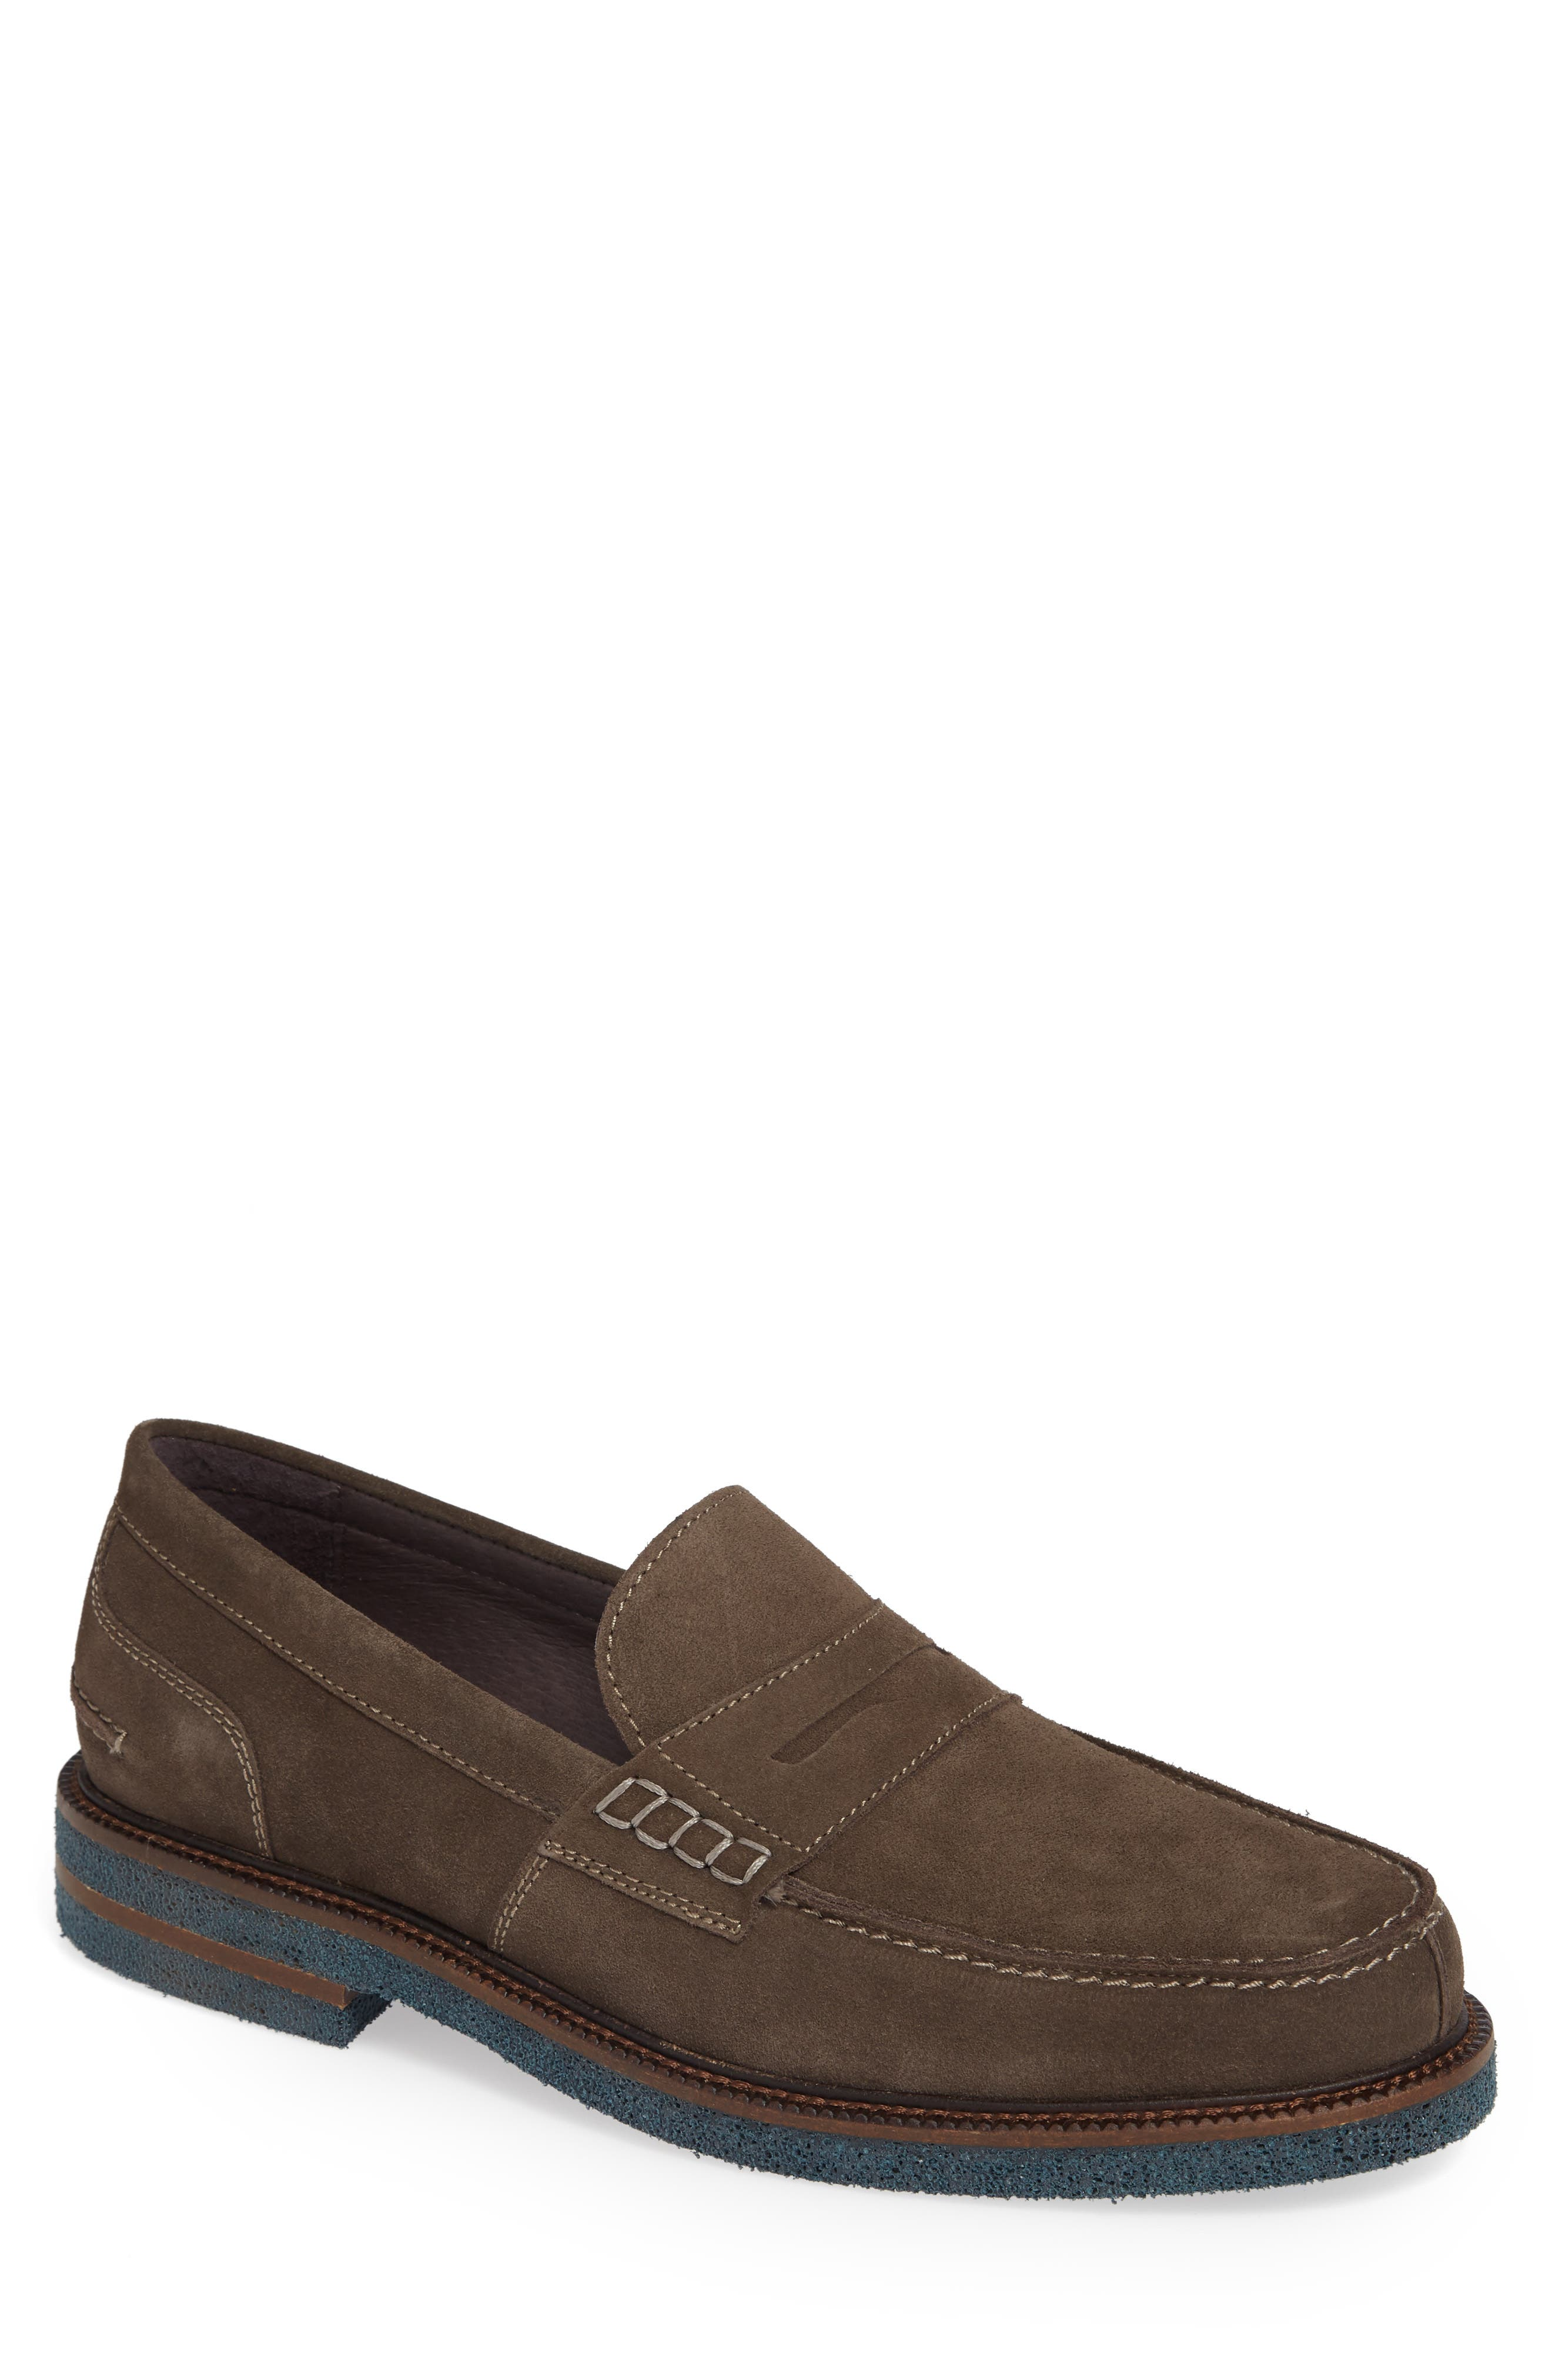 Landry Penny Loafer,                             Main thumbnail 1, color,                             GREY SUEDE